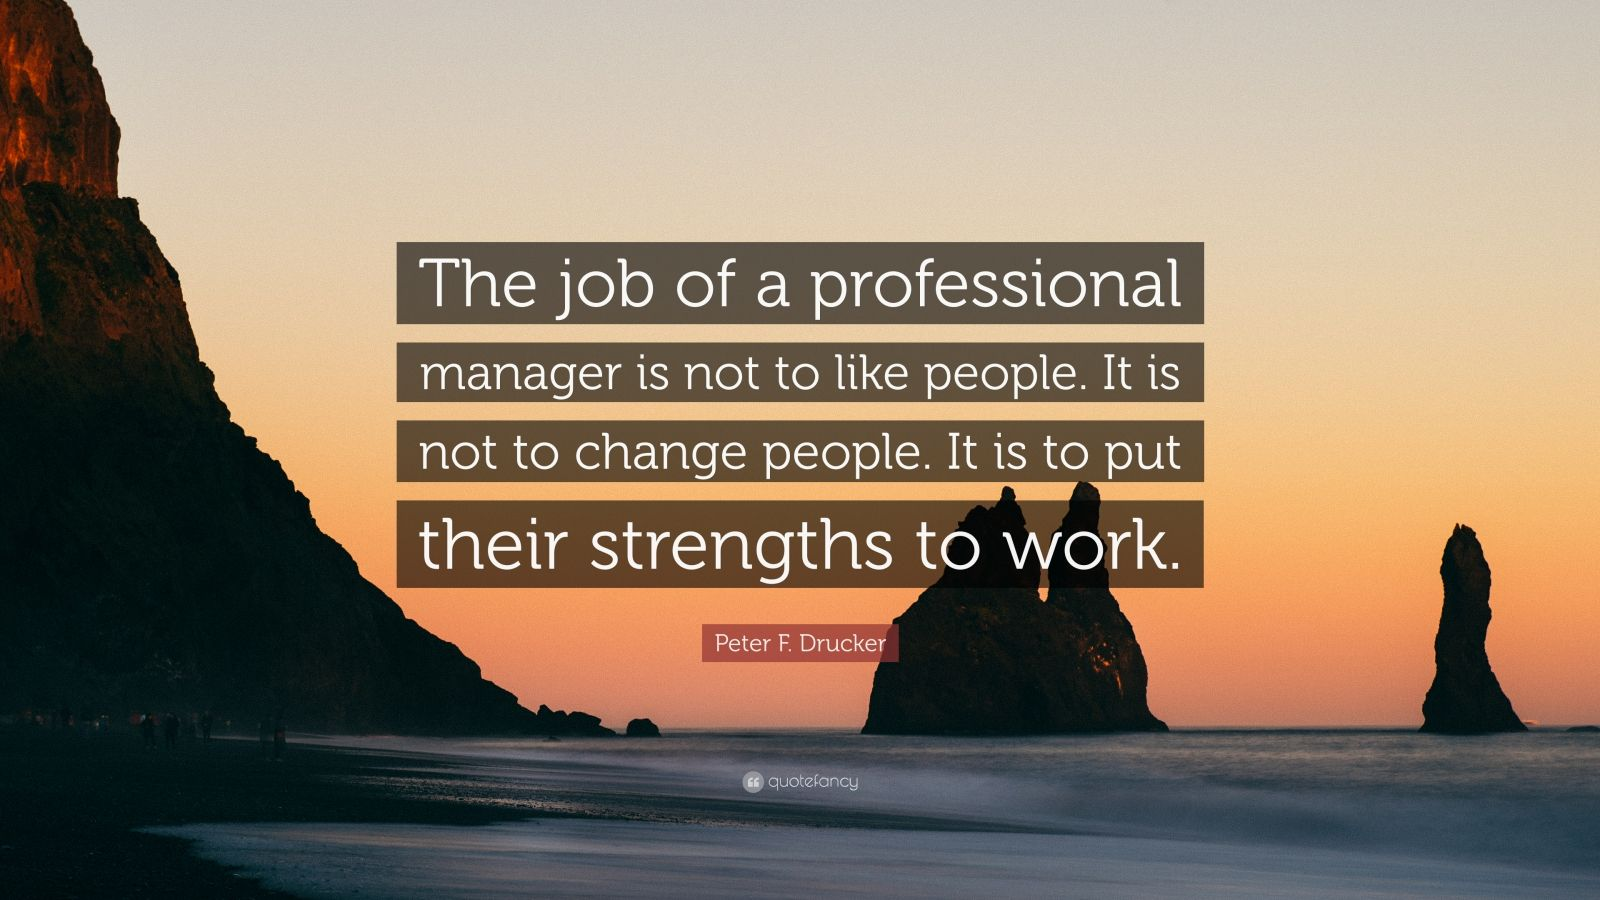 """Peter F. Drucker Quote: """"The job of a professional manager is not to like people. It is not to change people. It is to put their strengths to work."""""""